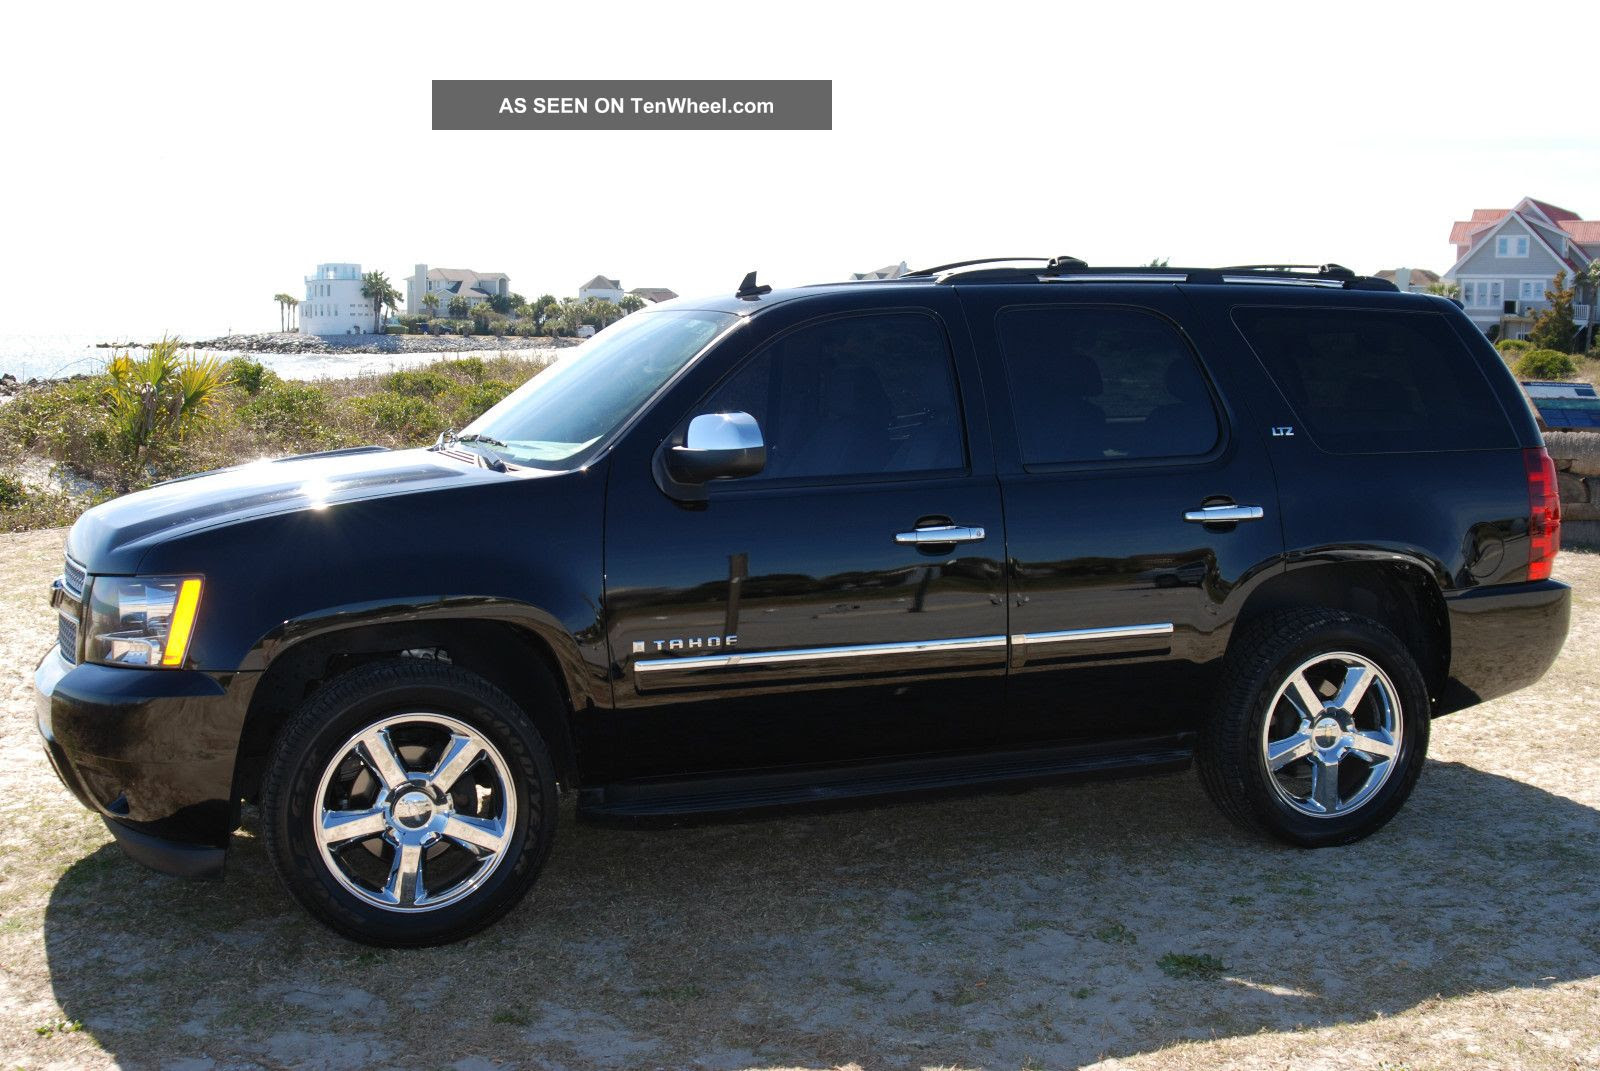 Awesome Black, Fully Loaded, 2009 Chevrolet Tahoe Ltz Tahoe photo 11